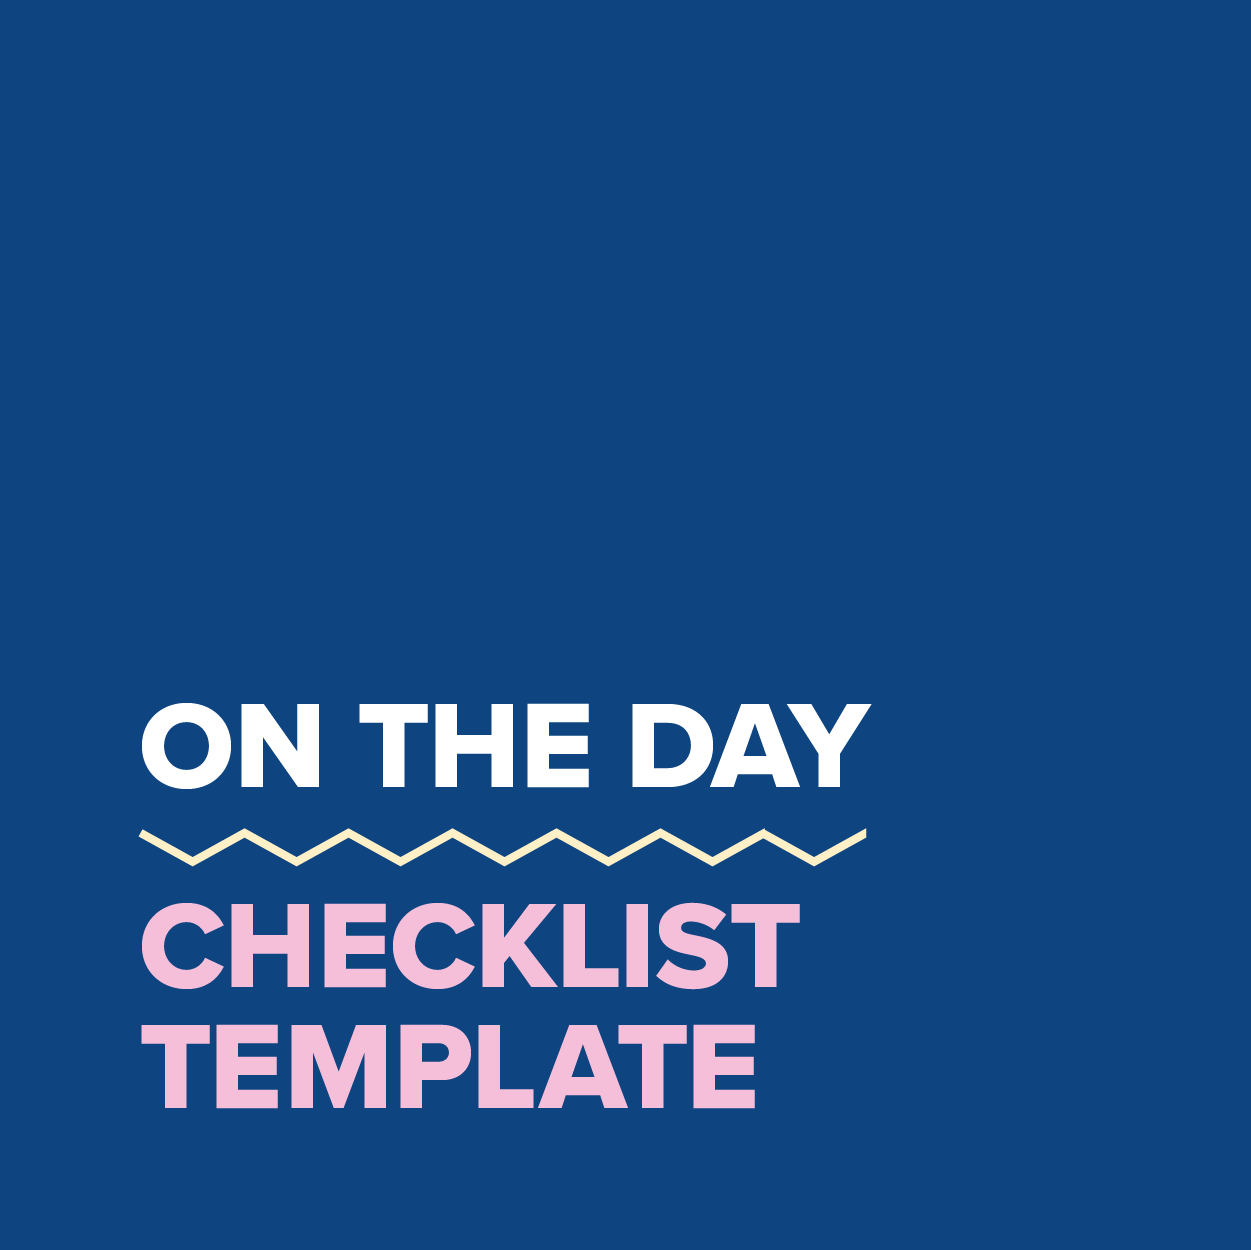 MDC2021_Template_On the day checklist